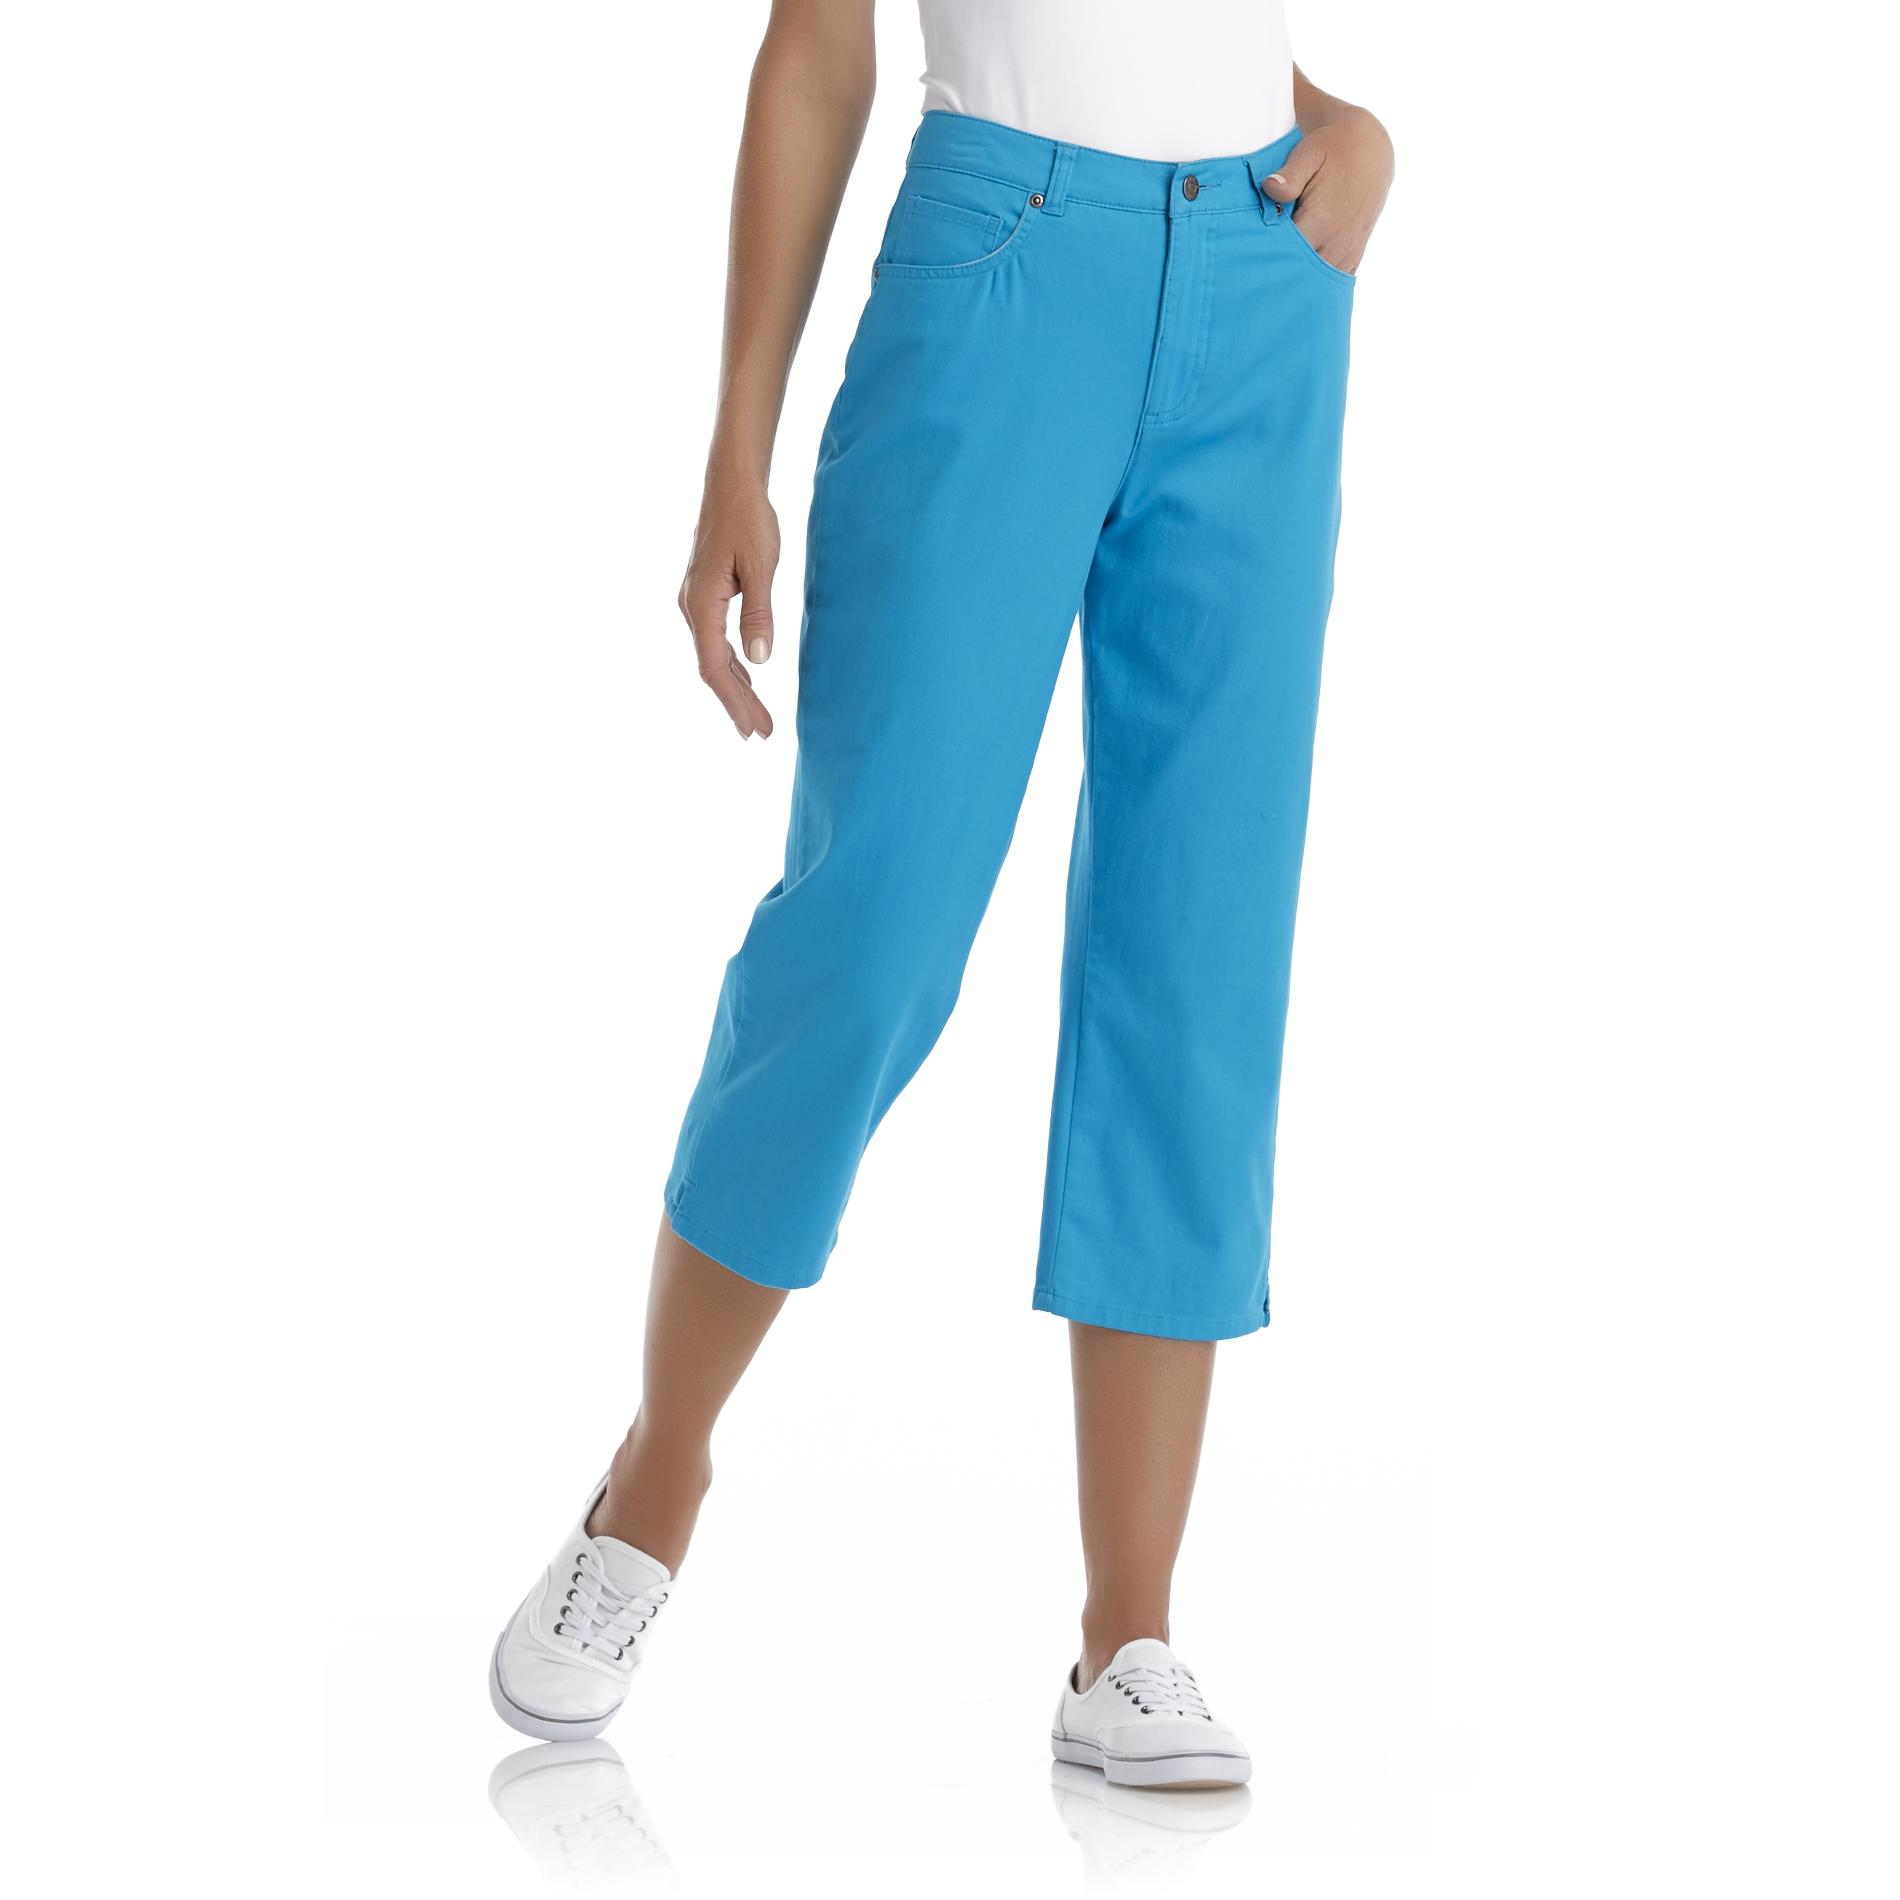 Women's Stretch Khaki Capri Pants